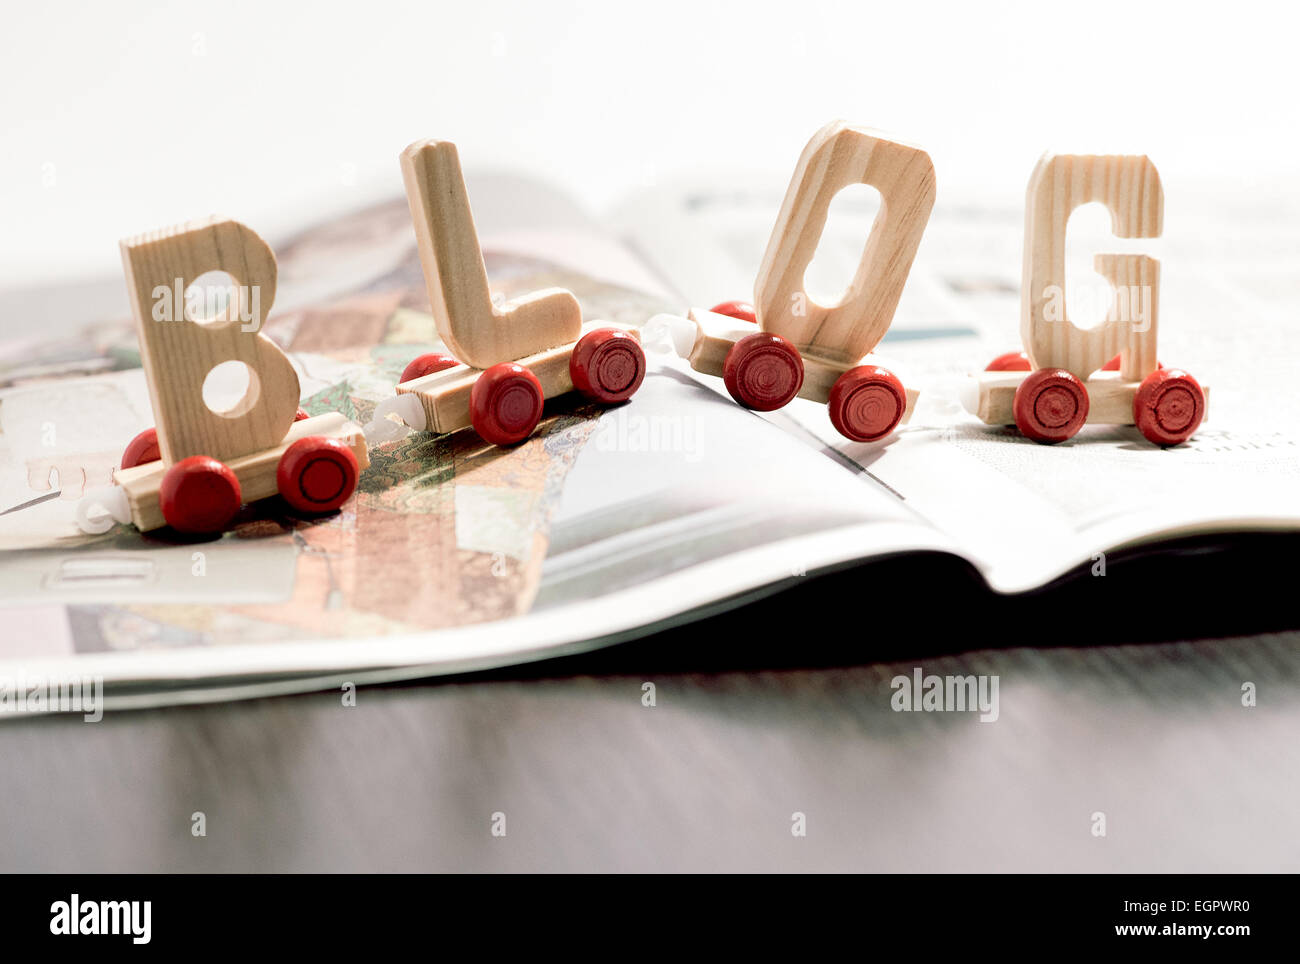 Word - Blog - in wooden letters - Stock Image